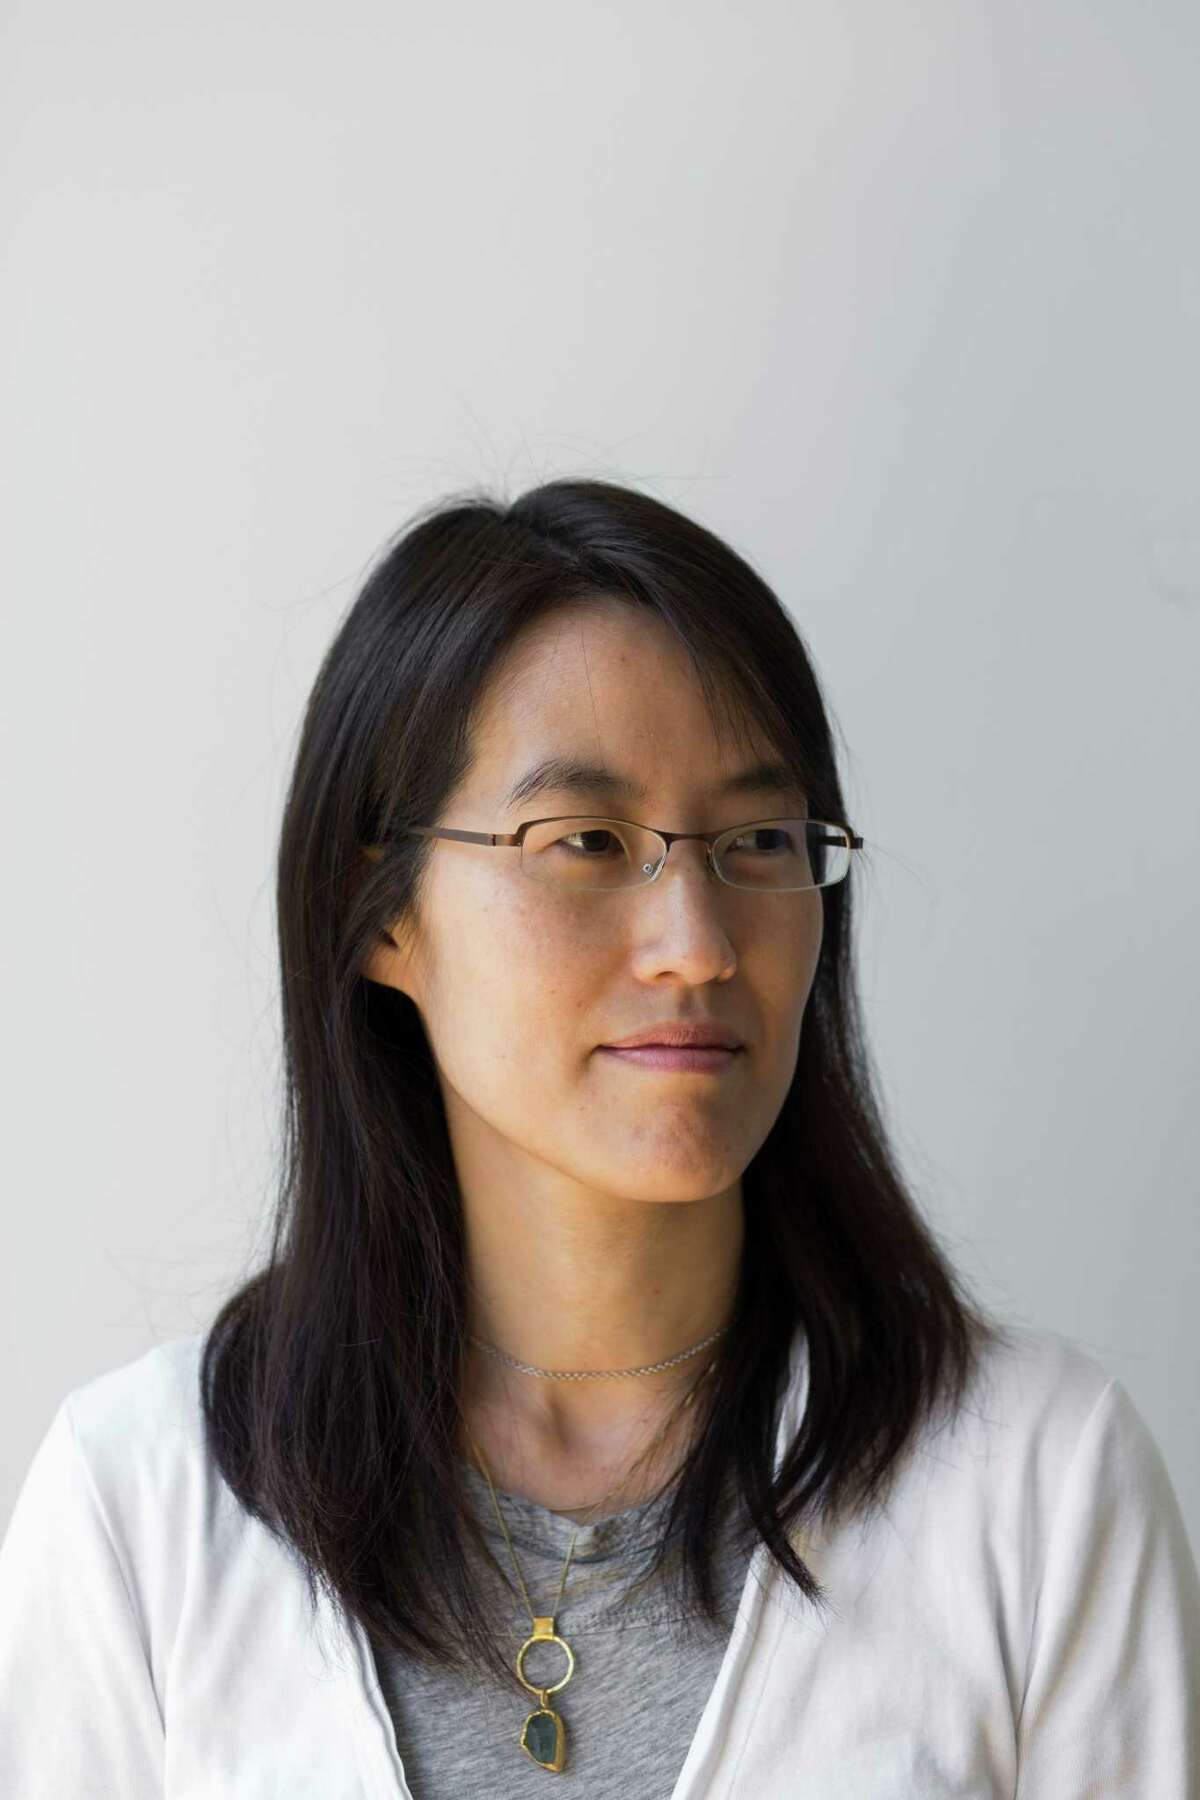 Ellen Pao, plaintiff in the suit against the prominent venture capital firm Kleiner Perkins, in San Francisco in July of last year.